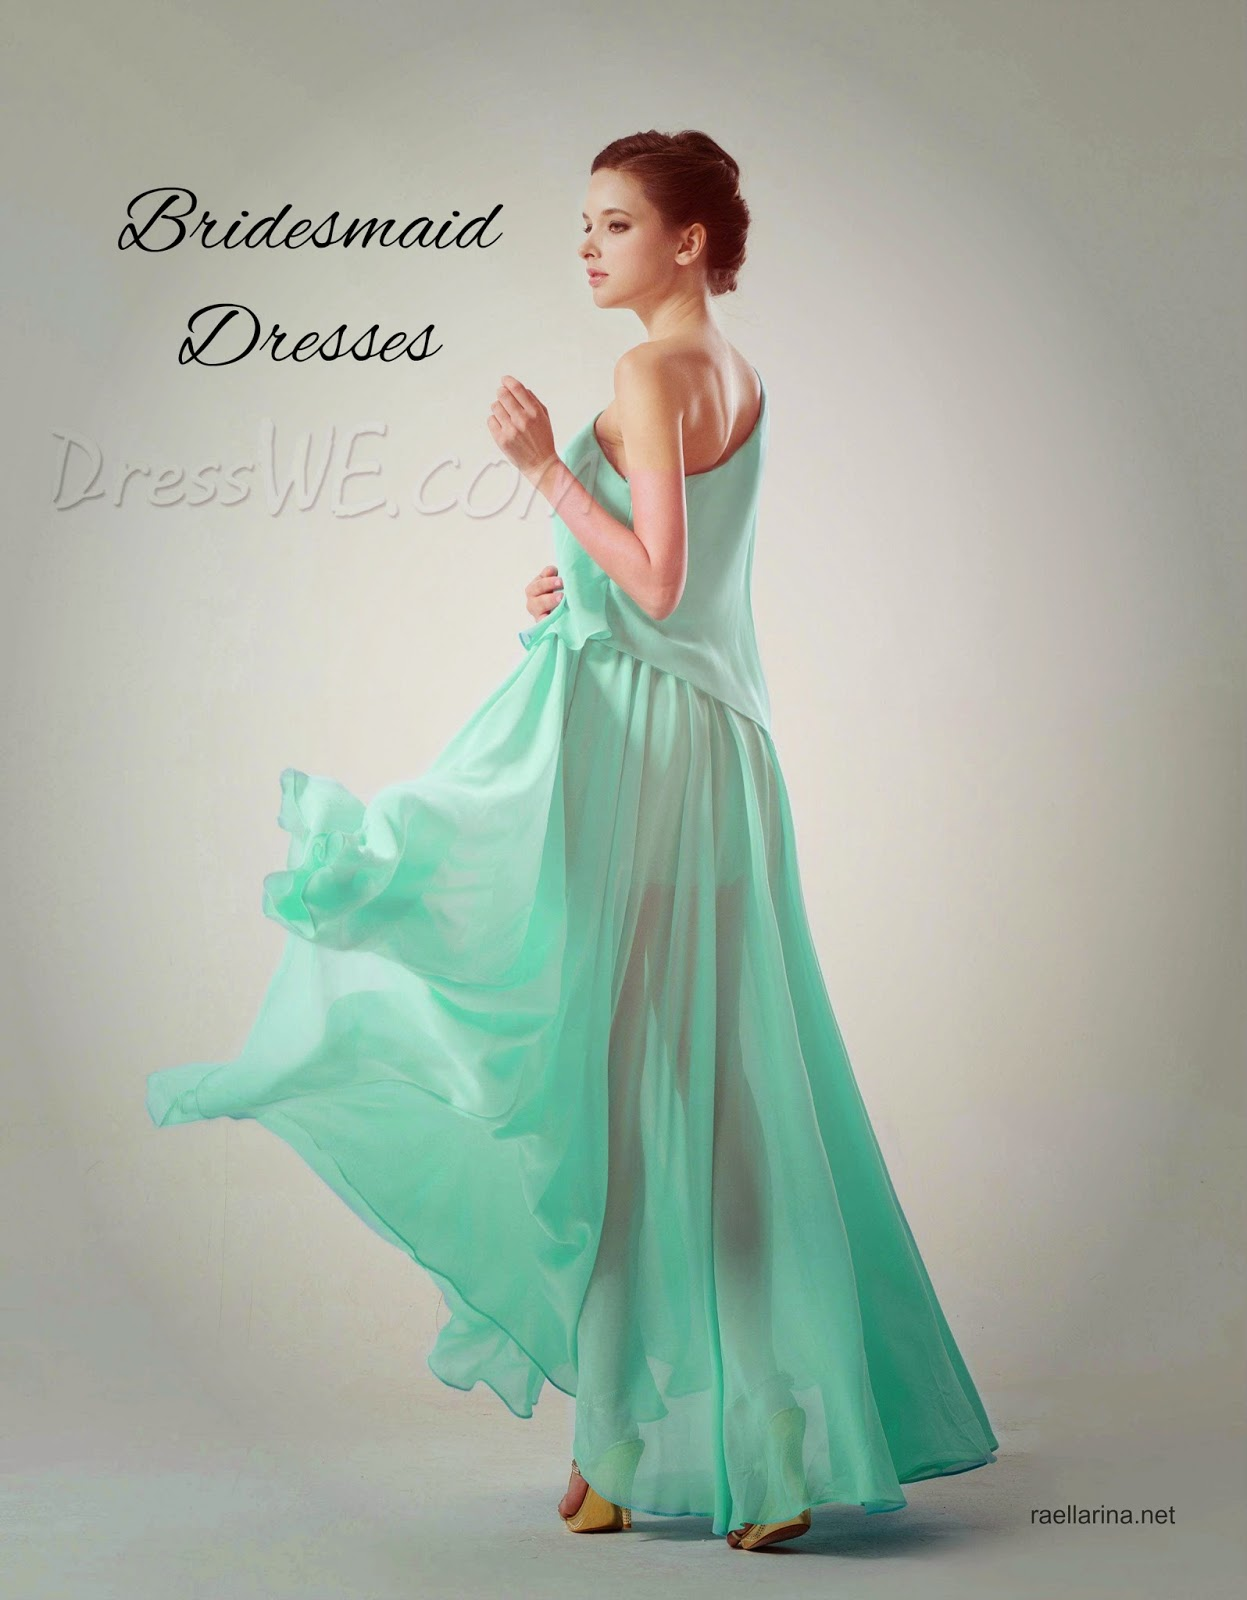 Bridesmaid dresses from dresswe raellarina philippines best lets admit it pastels are always sweet to look at and wearing a pastel bridesmaid gown in a wedding would probably be the most fantastic decision youll ombrellifo Image collections